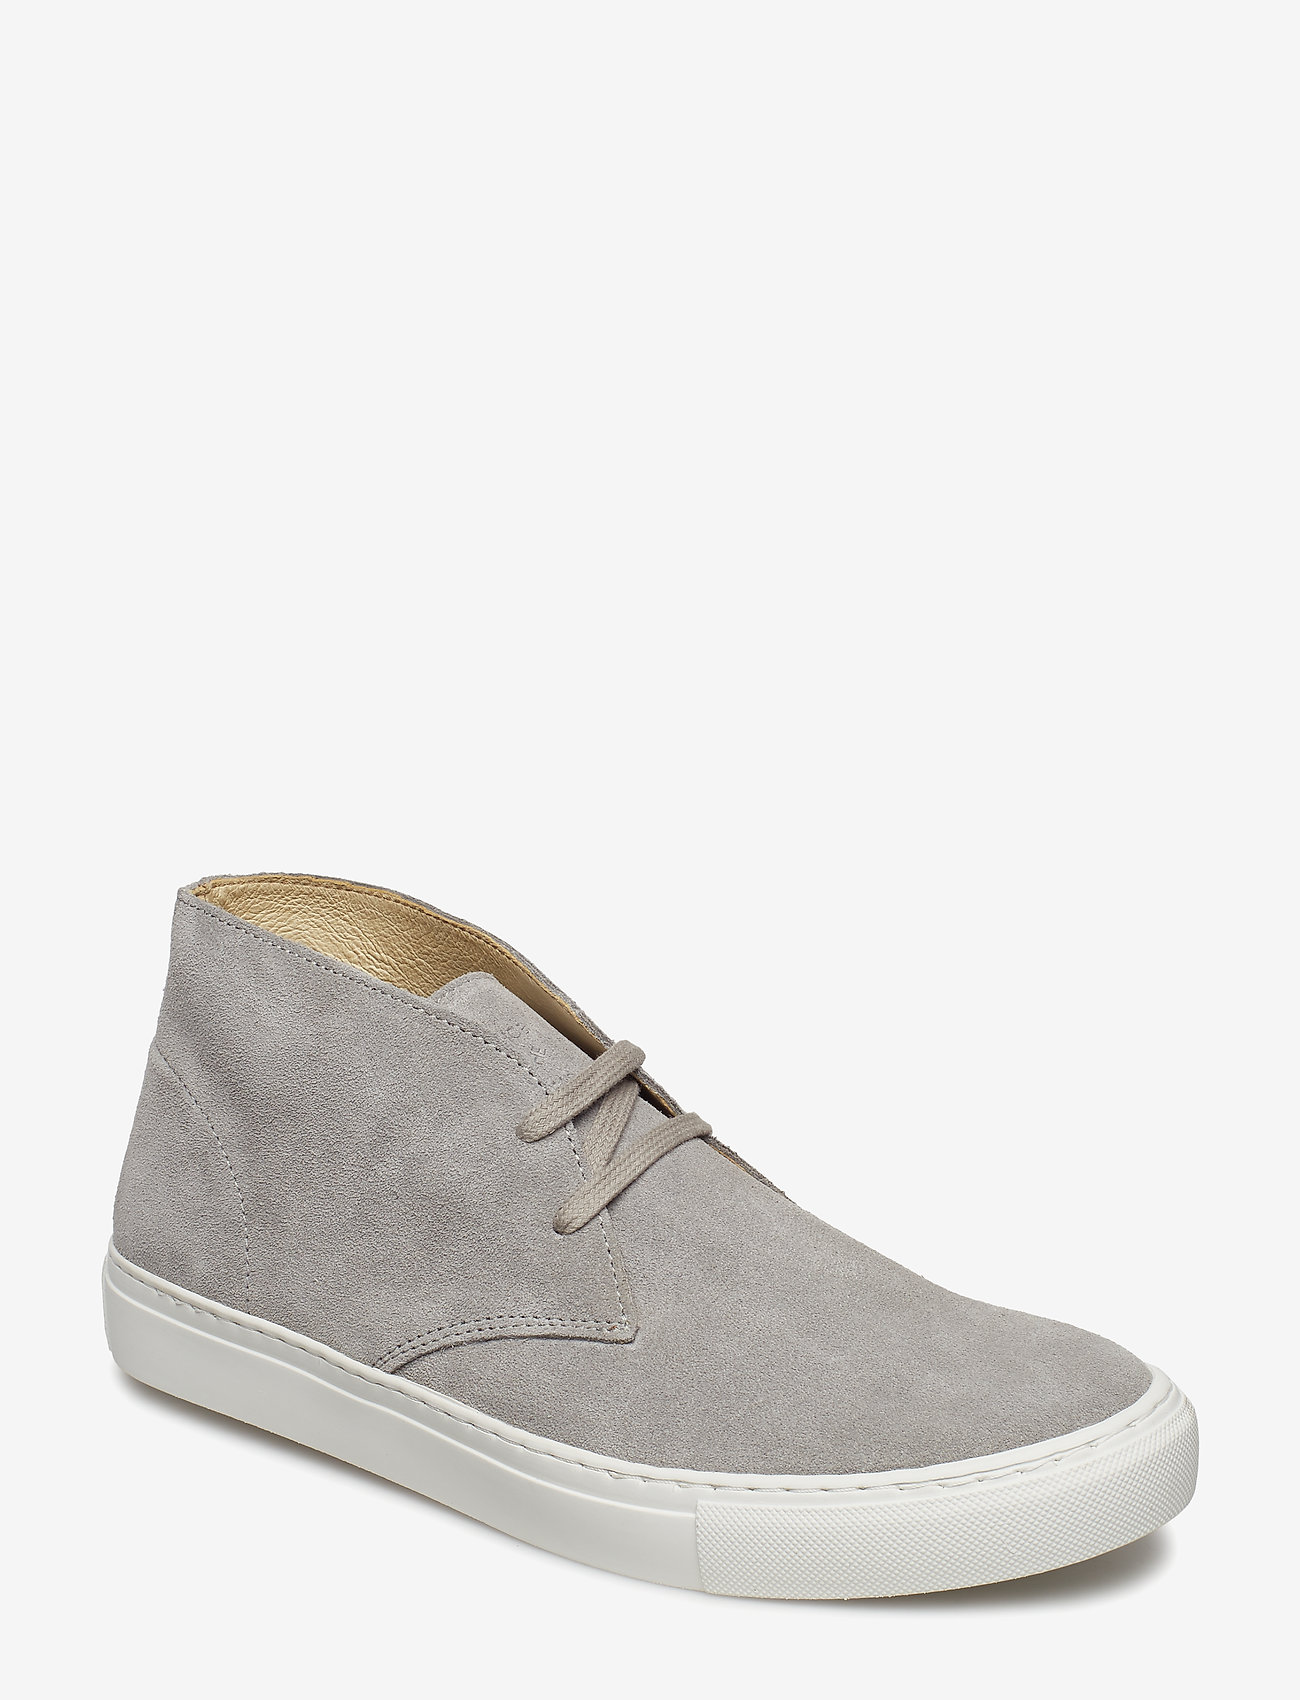 Shoe The Bear - LIAM S - desert boots - light grey - 0